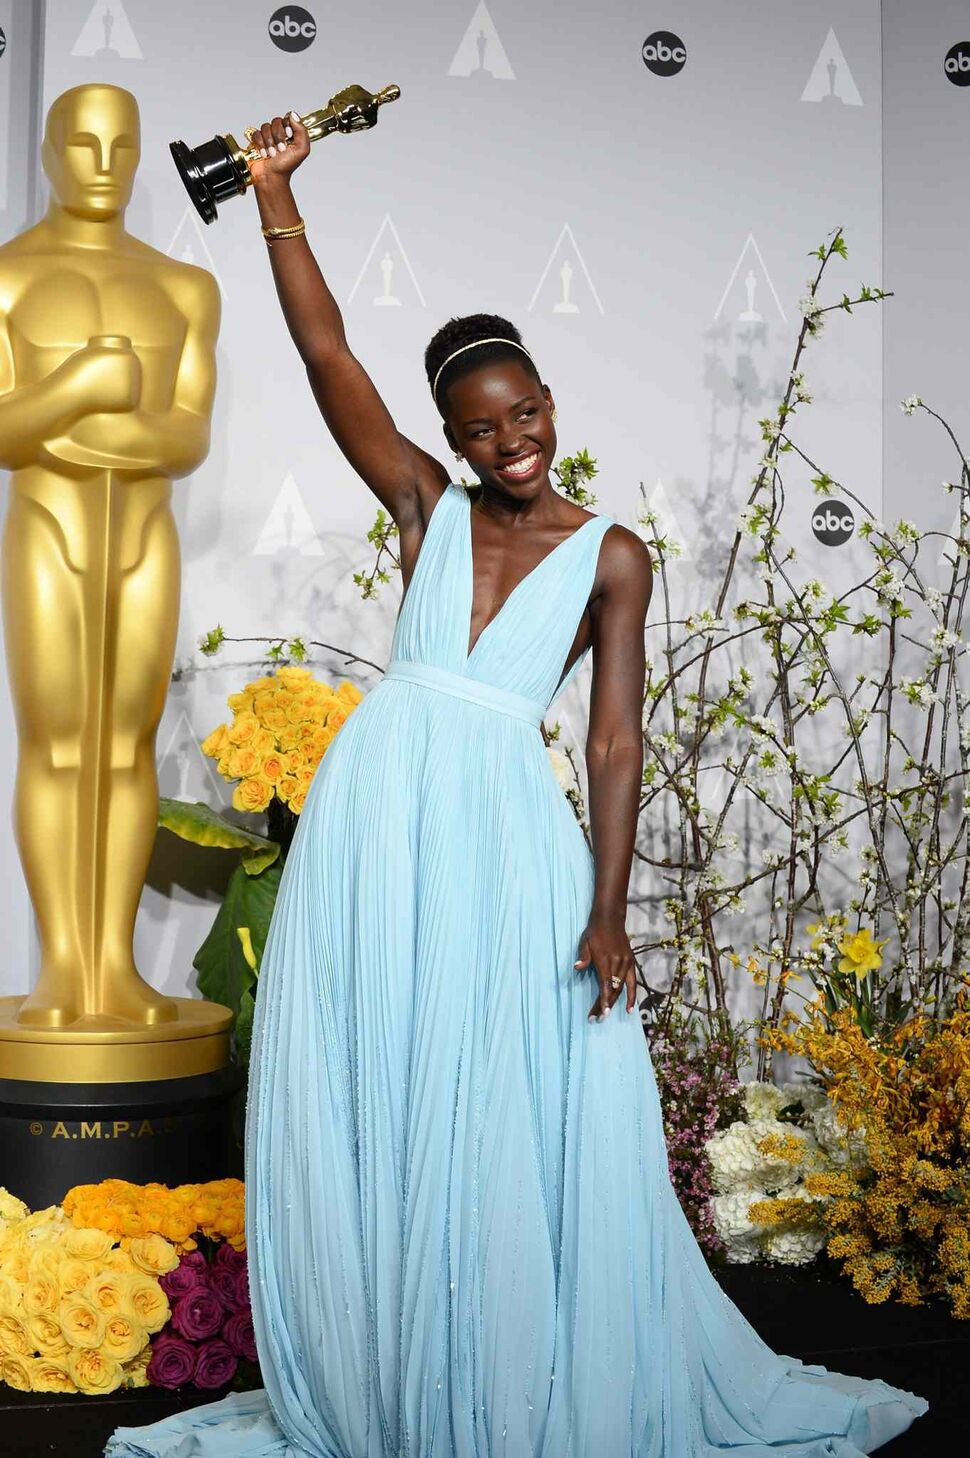 Lupita Nyong'o with her Academy Award for best actress in a supporting role for 12 Years a Slave. (Jordan Strauss / The Associated Press)